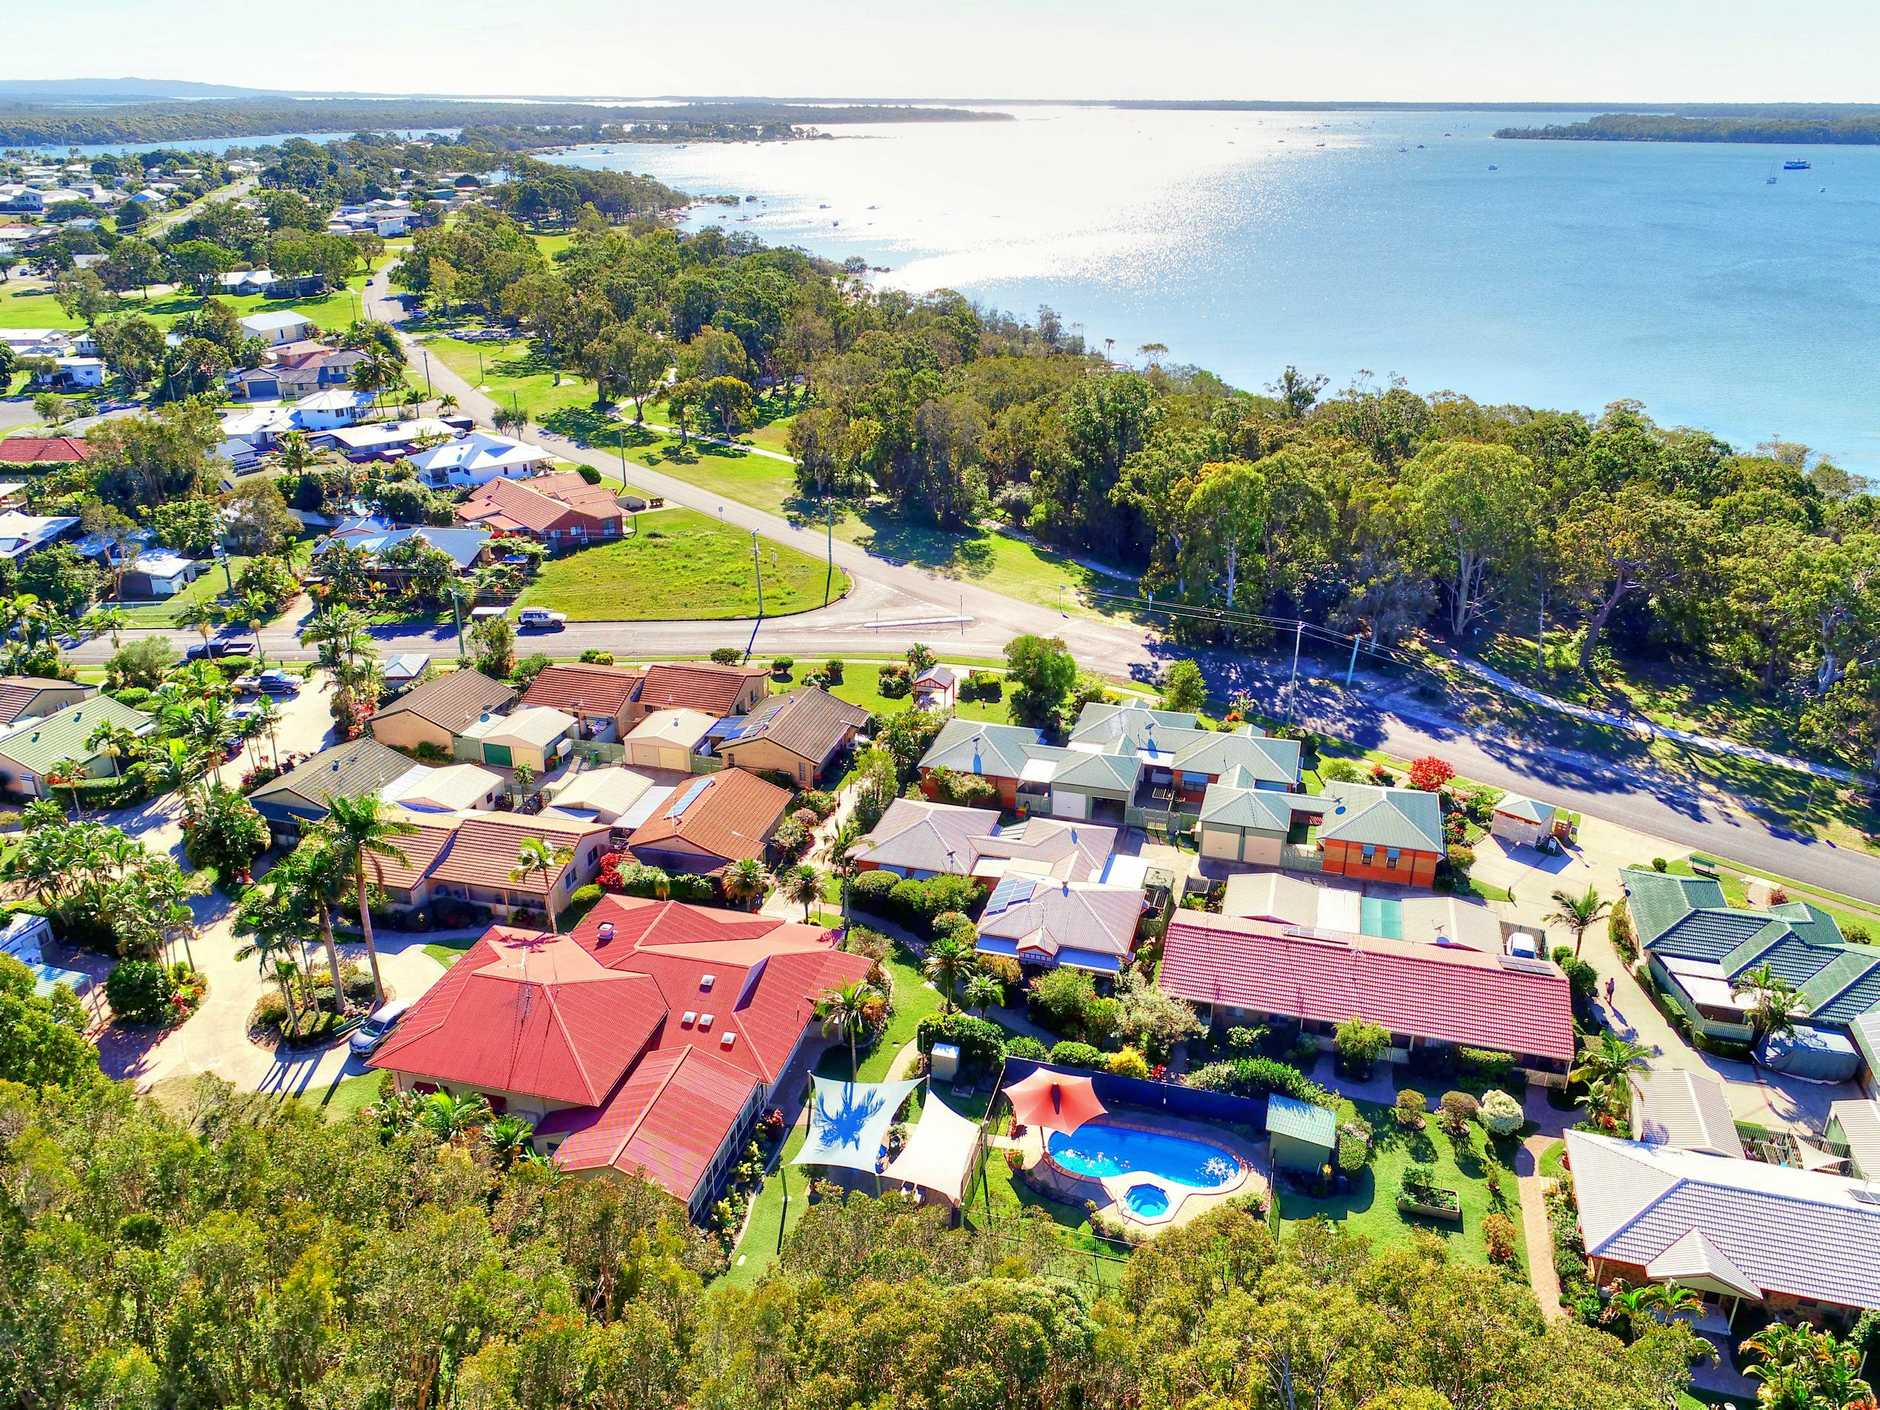 Ian Pye Real Estate Cooloola Waters Resort Tin Can Bay